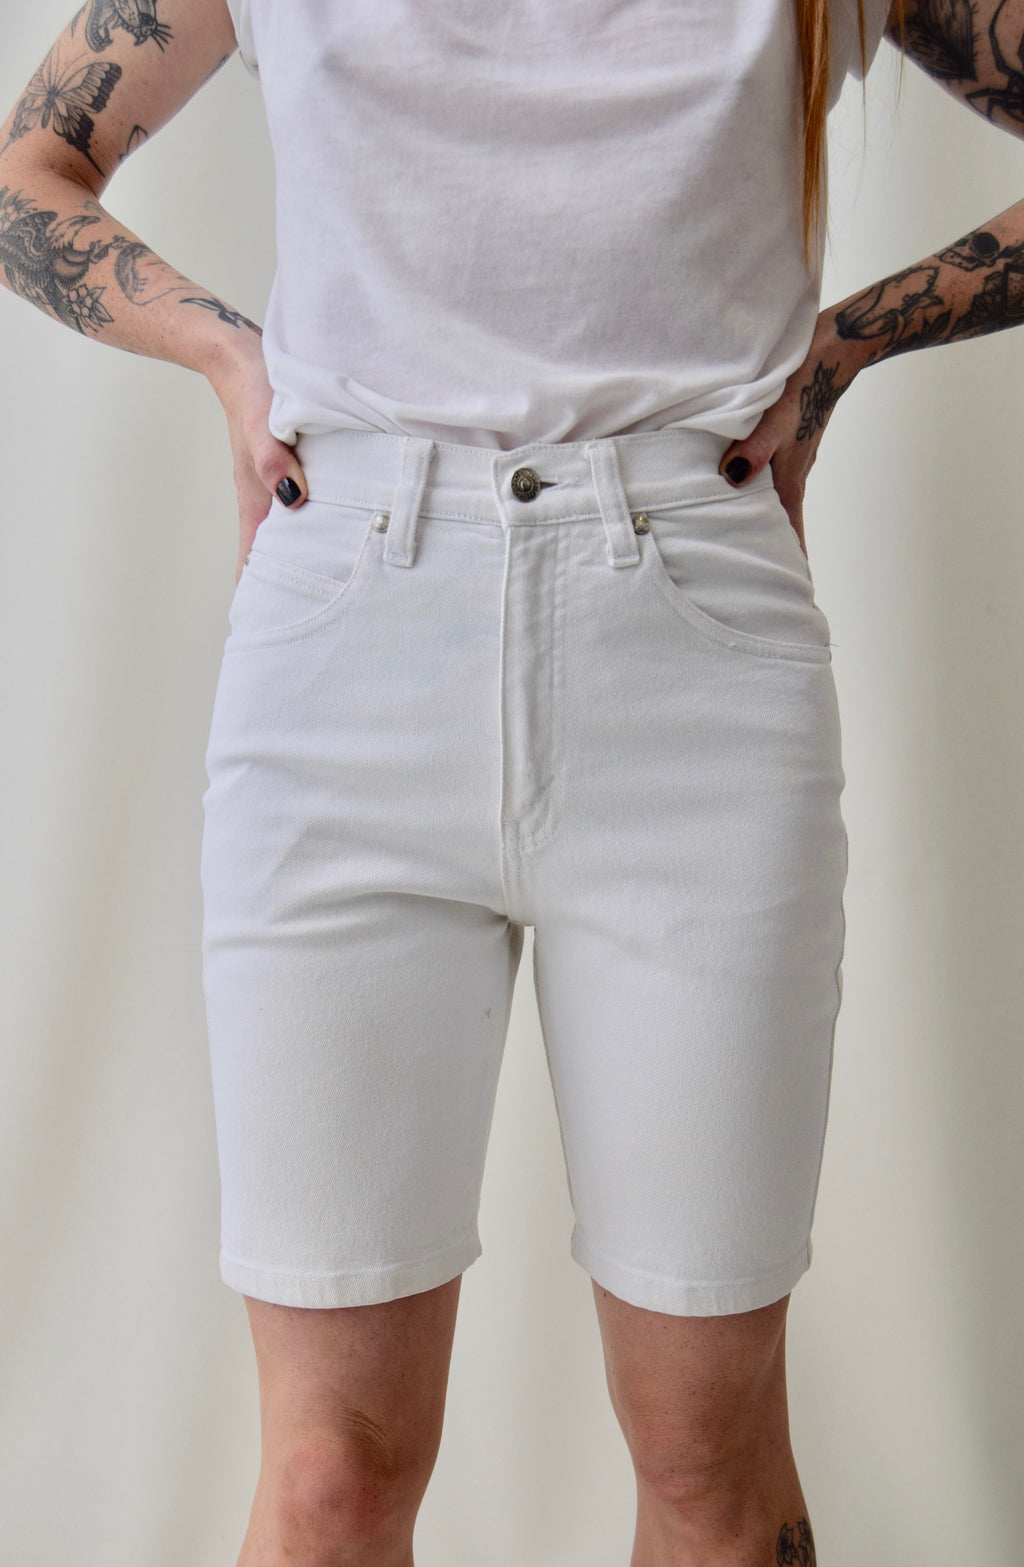 Stretchy Levis Bermuda Shorts